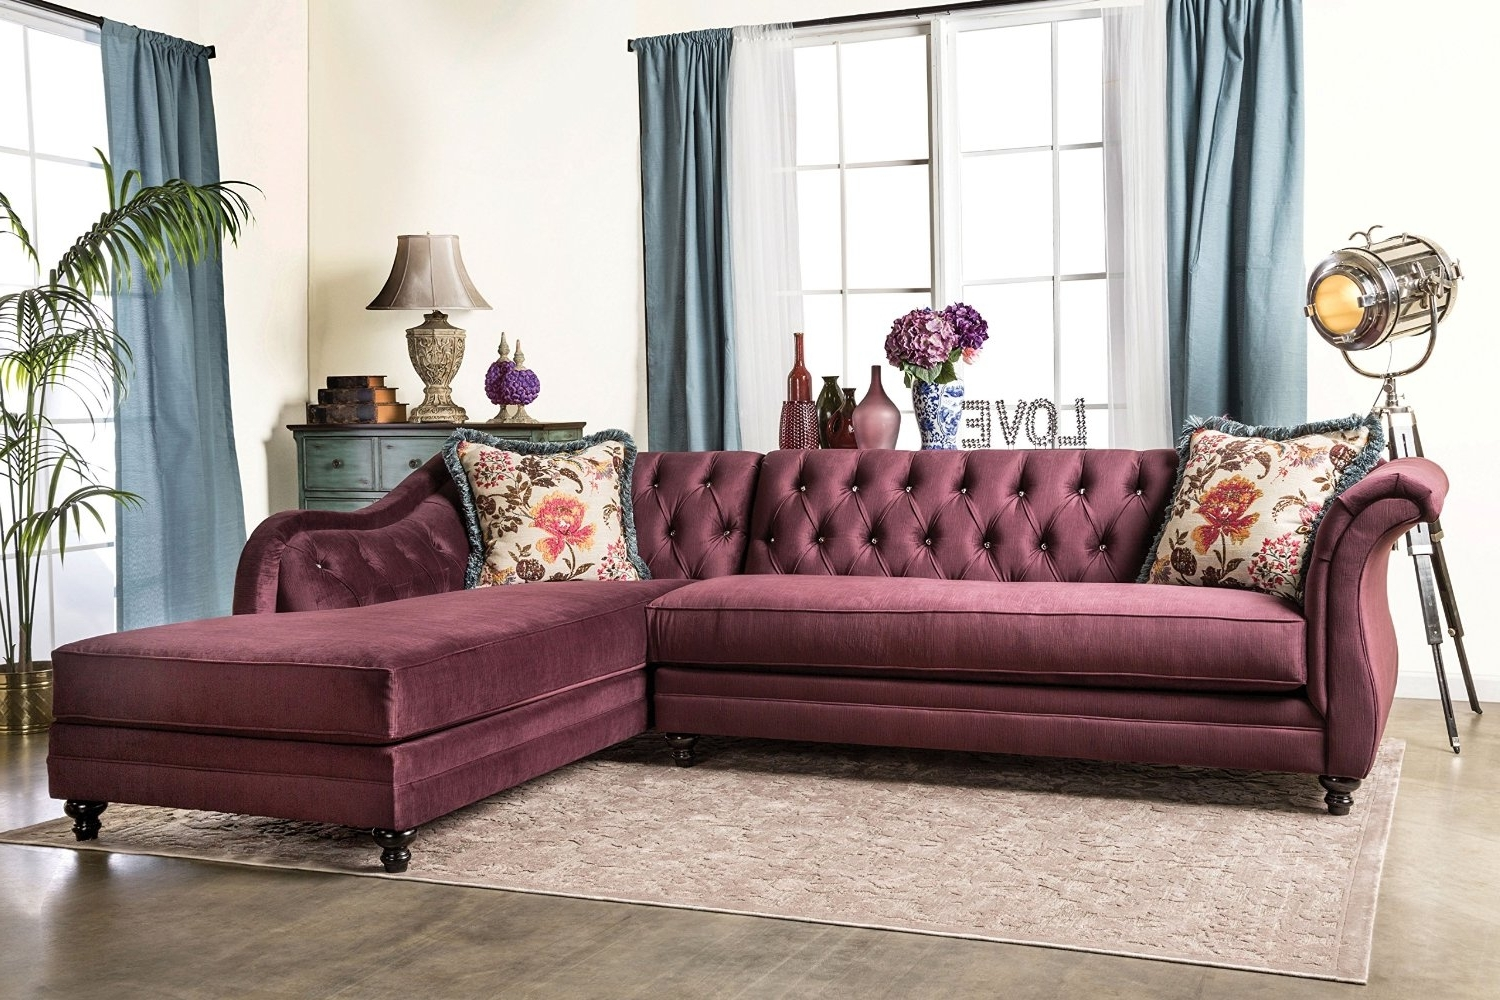 Tufted Sectional Sofas With Chaise Pertaining To Fashionable Sofa : Target Tufted Loveseat Tufted Leather Furniture White (View 9 of 15)